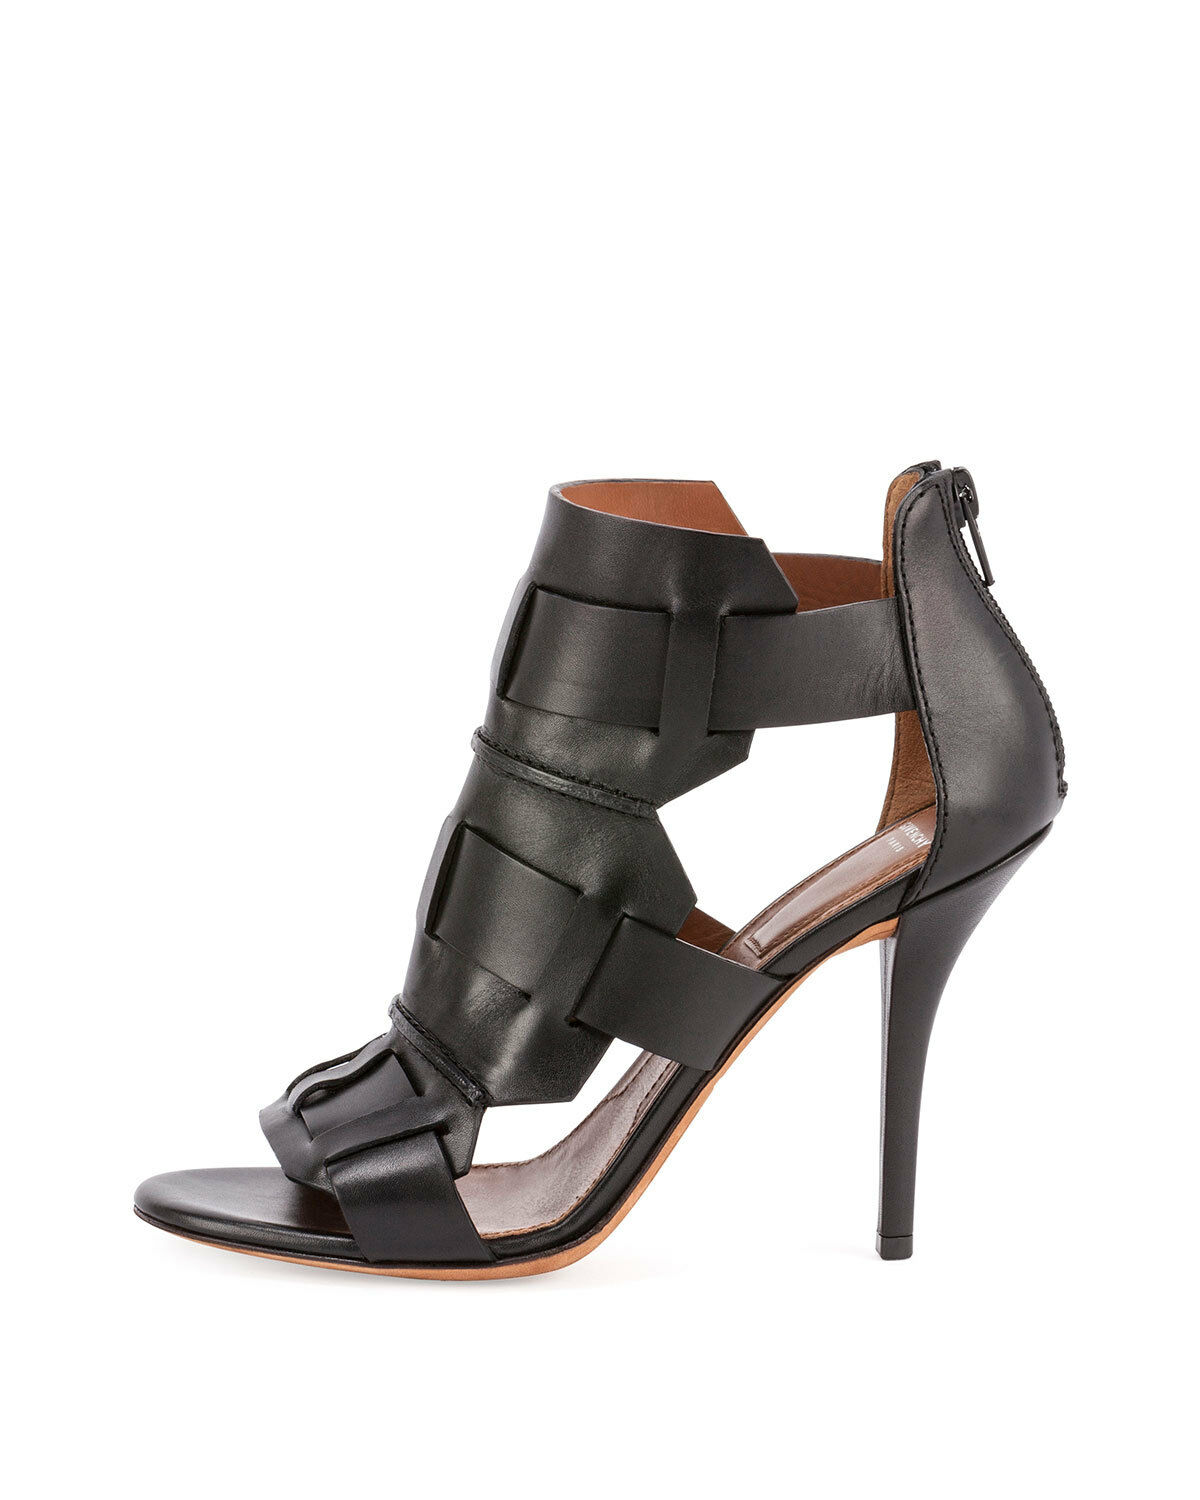 975+ Givenchy Woven Cage Black Leather Open Toe Sandal Heels shoes 37   7